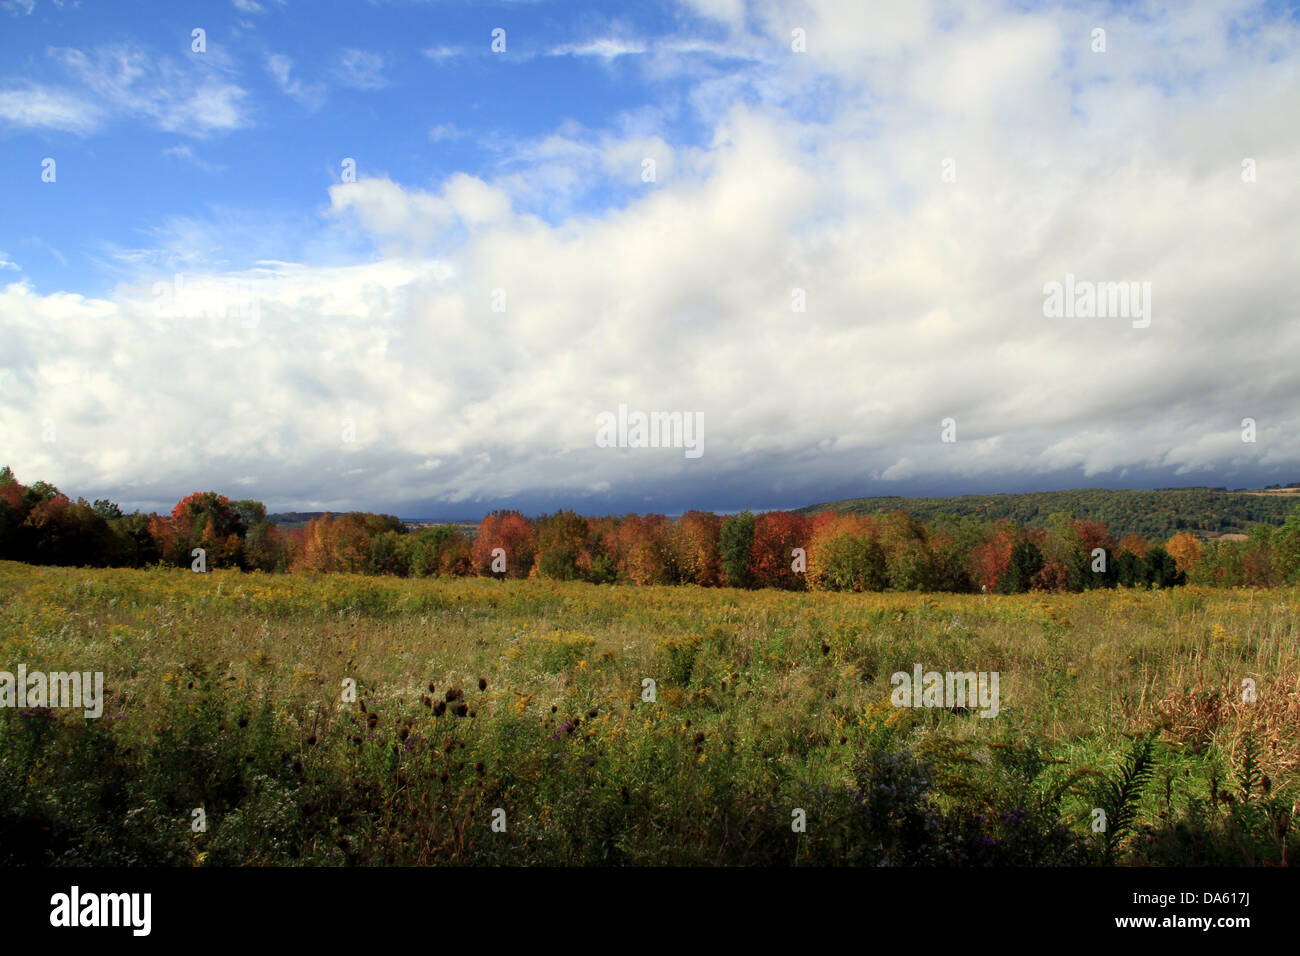 Fall Field - Stock Image